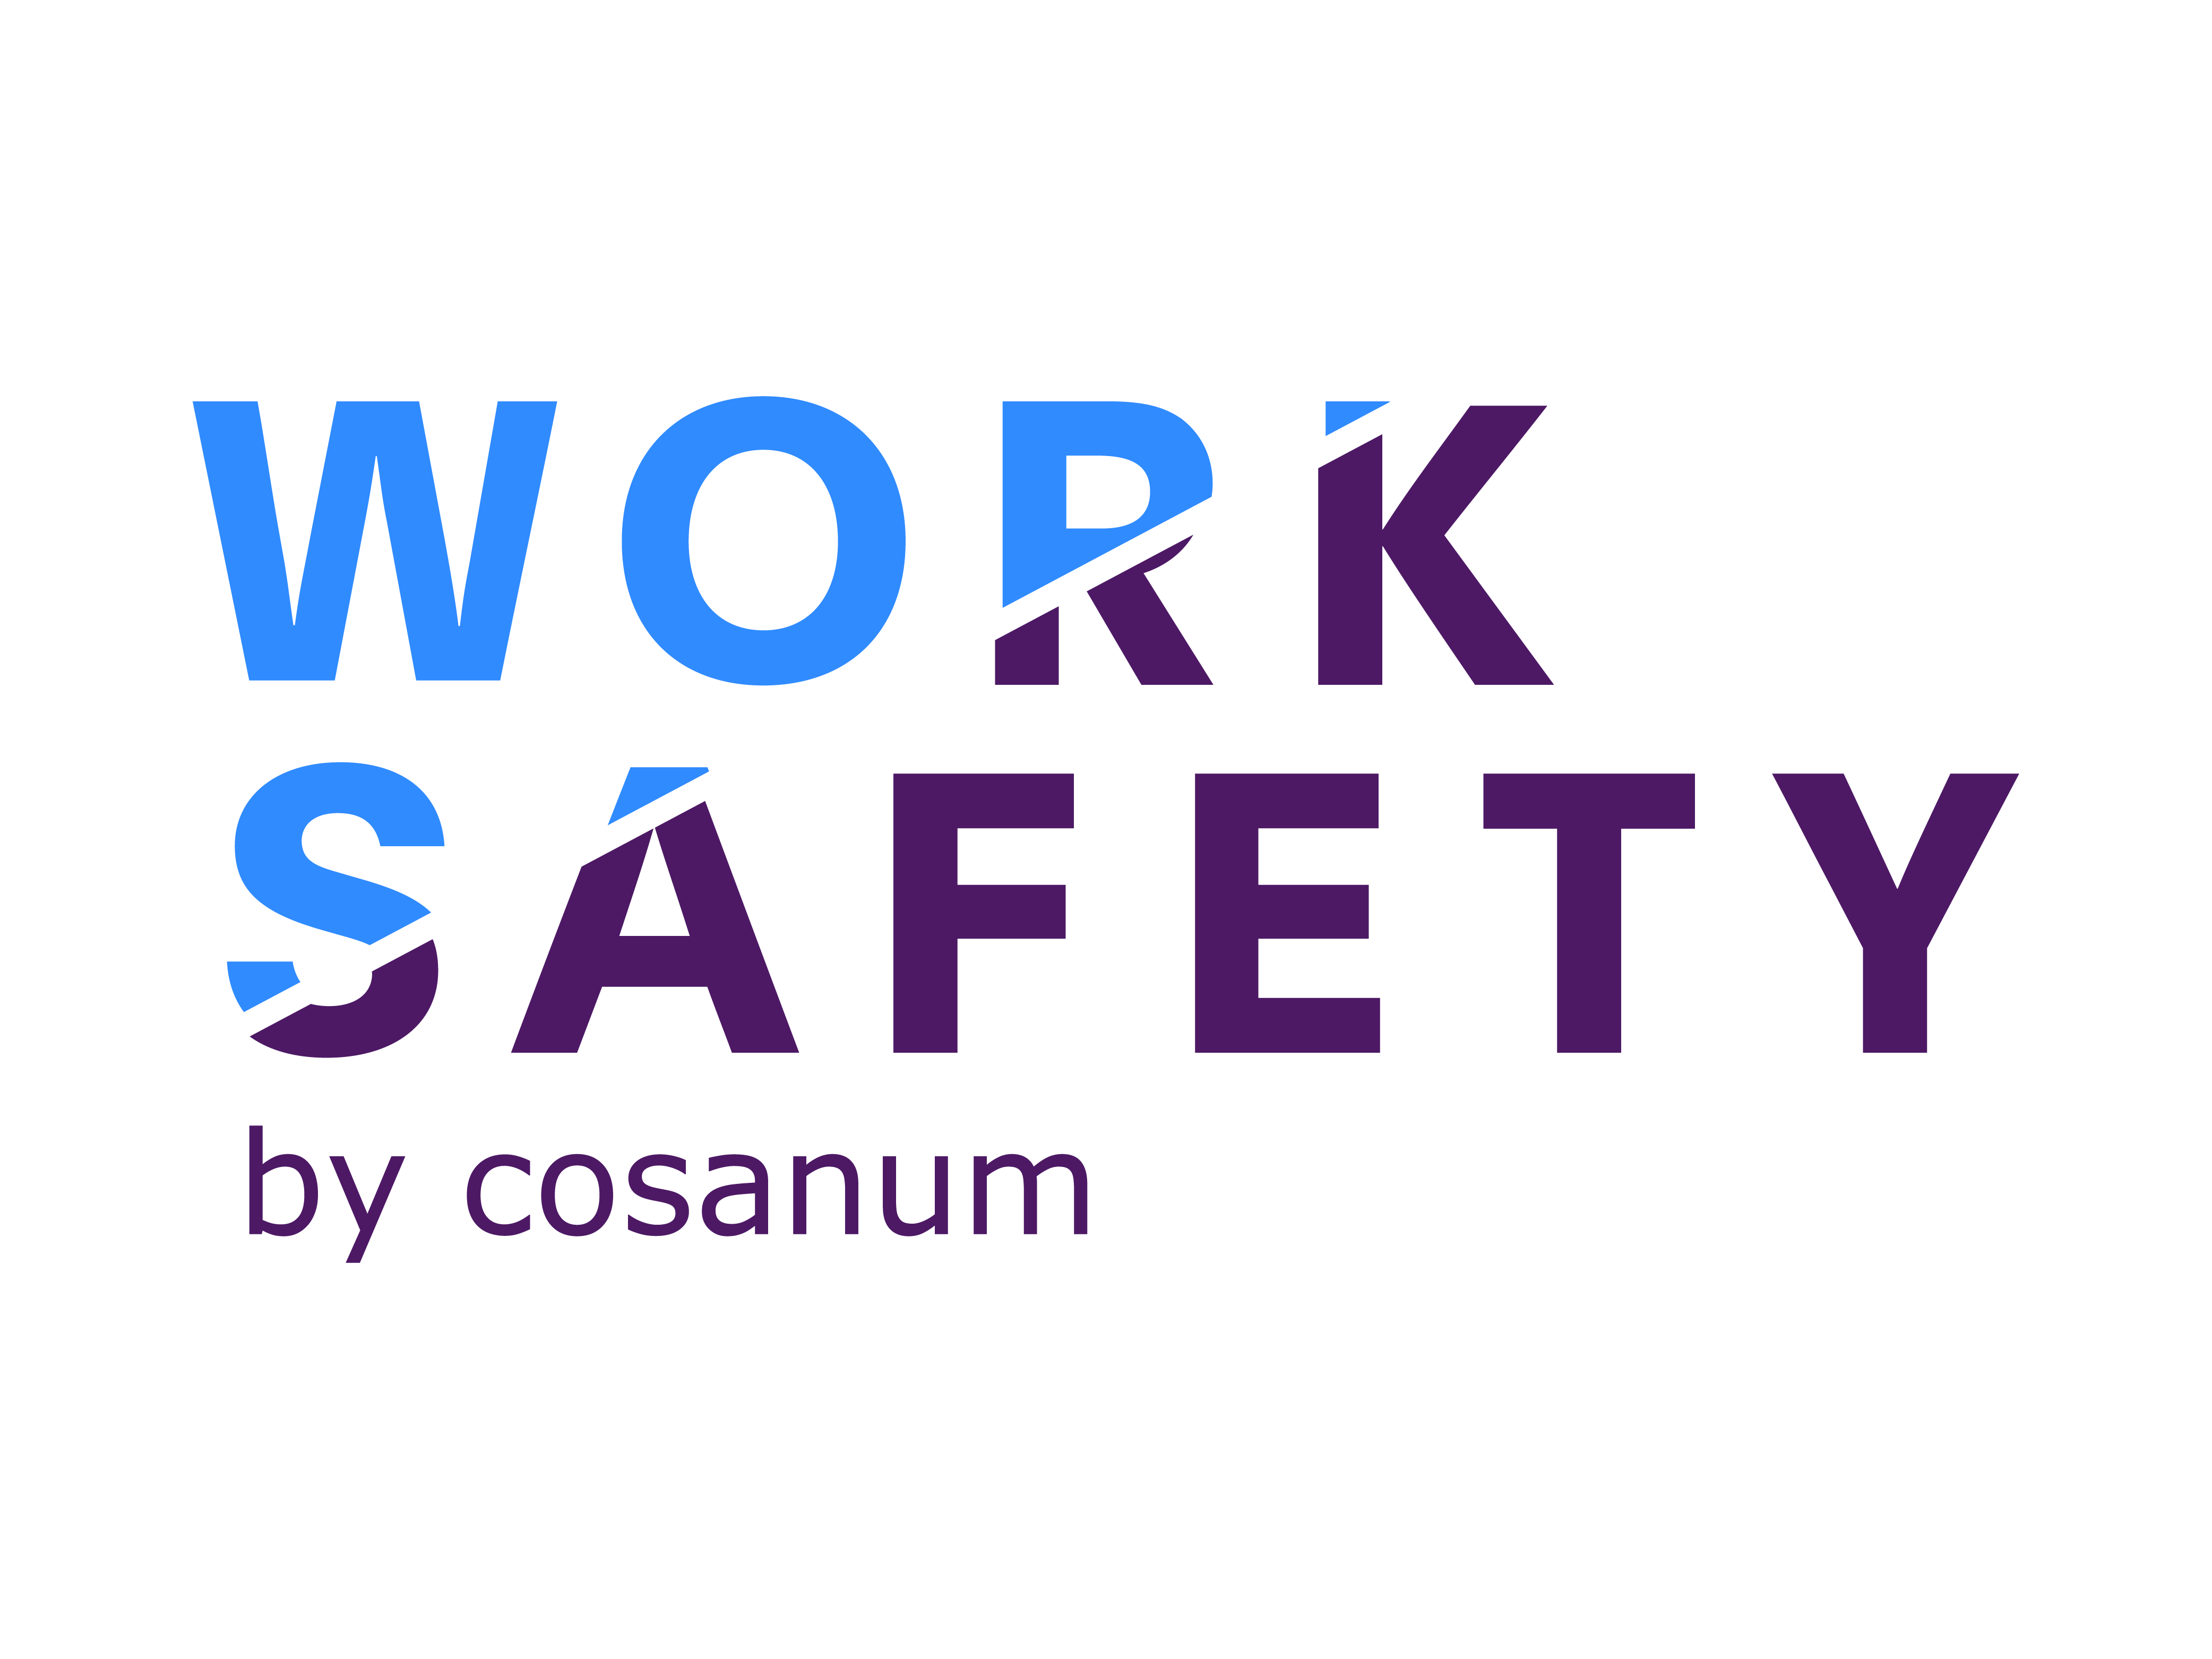 Worksafety by cosanum